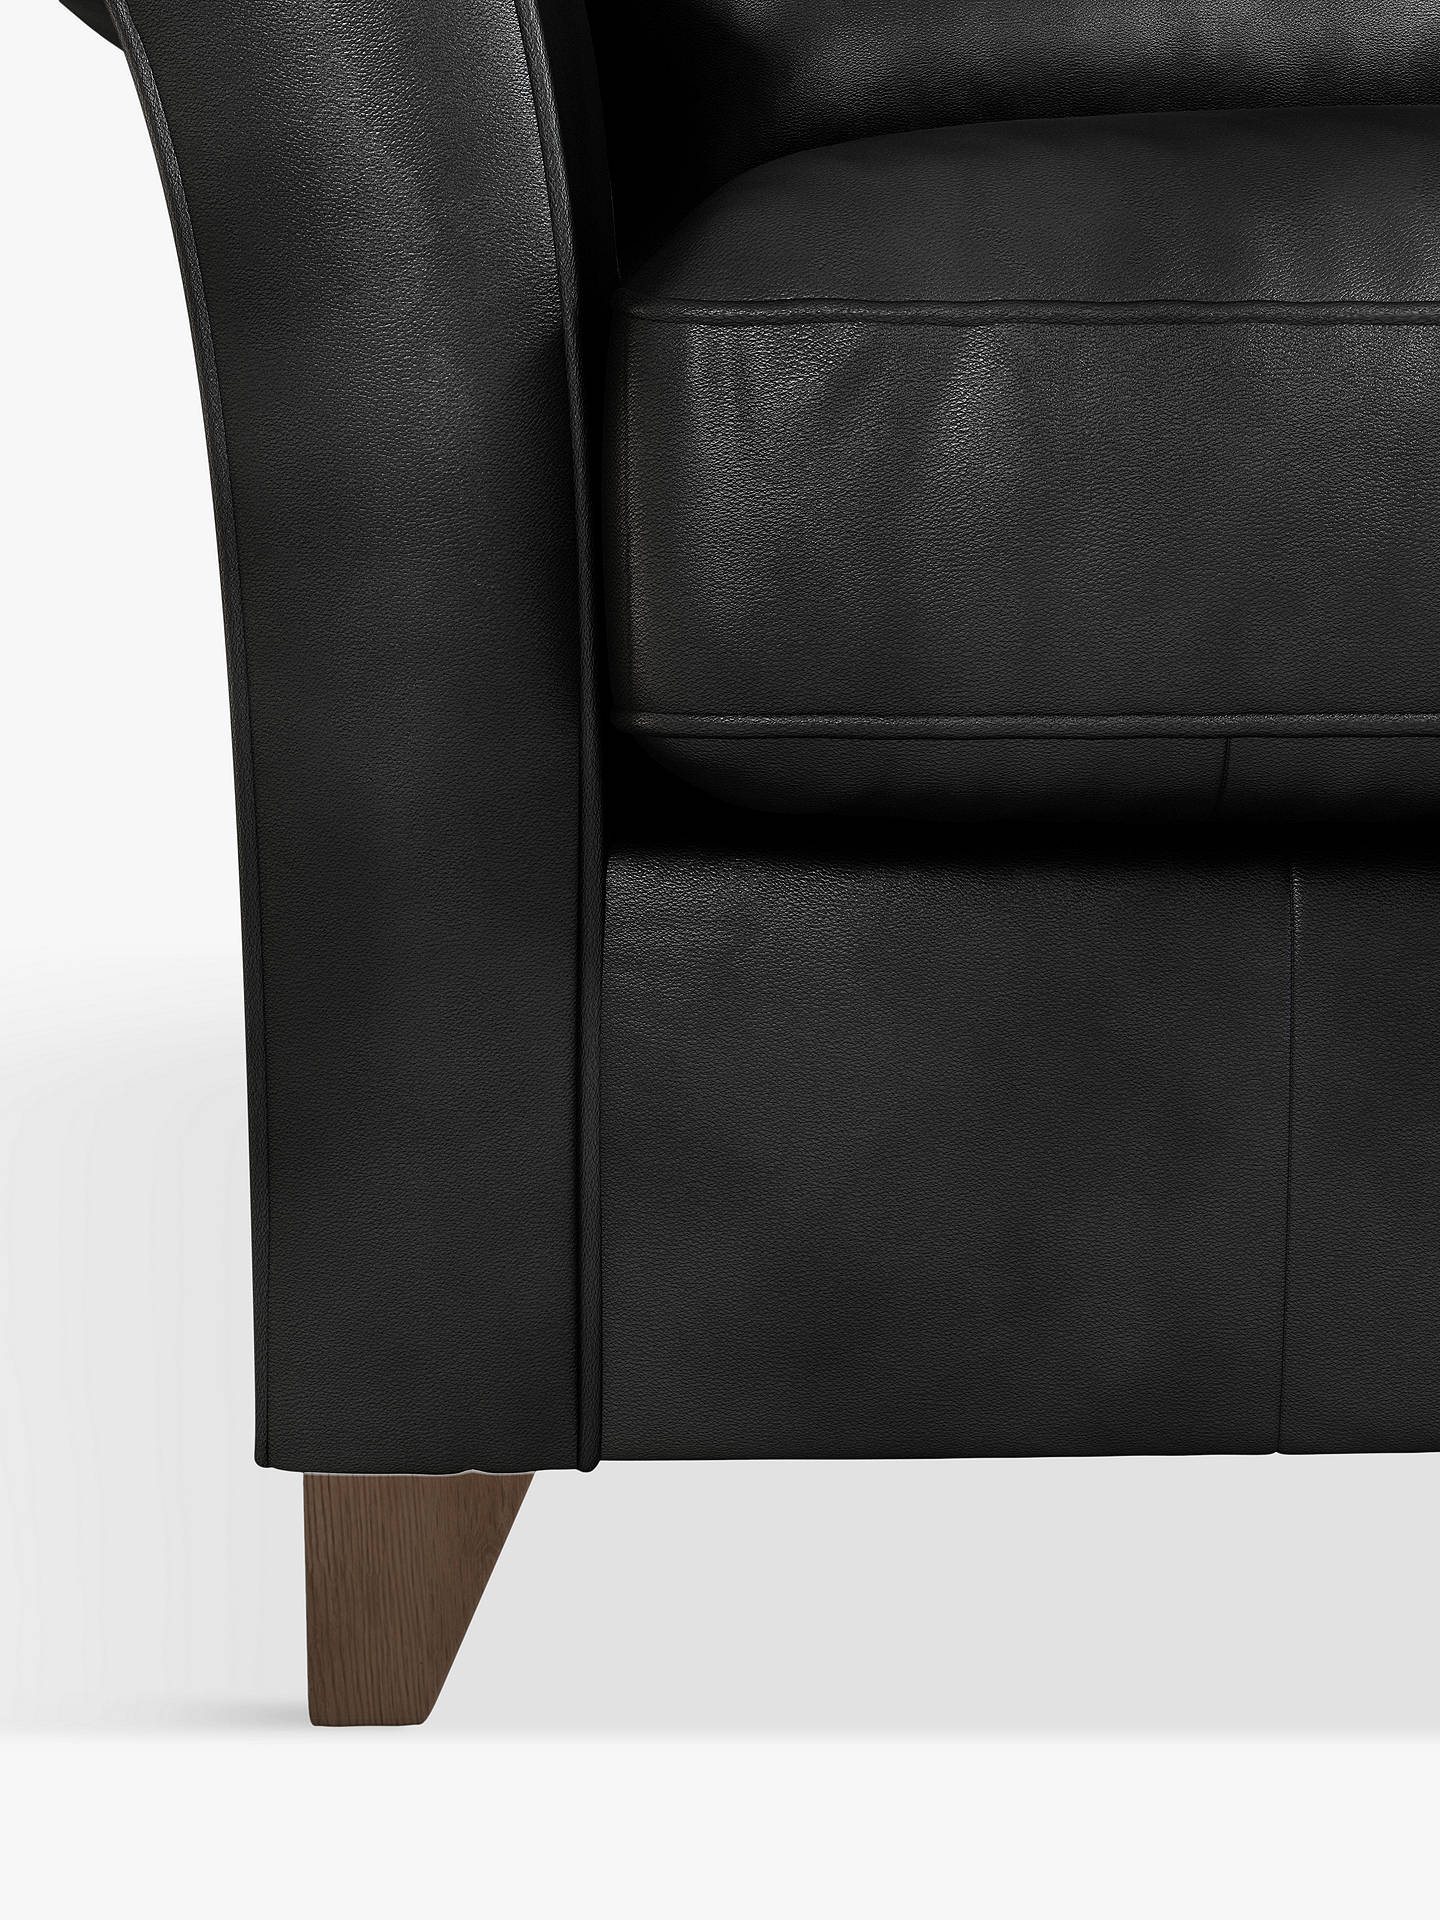 Buy John Lewis & Partners Charlotte Leather Snuggler, Dark Leg, Contempo Black Online at johnlewis.com